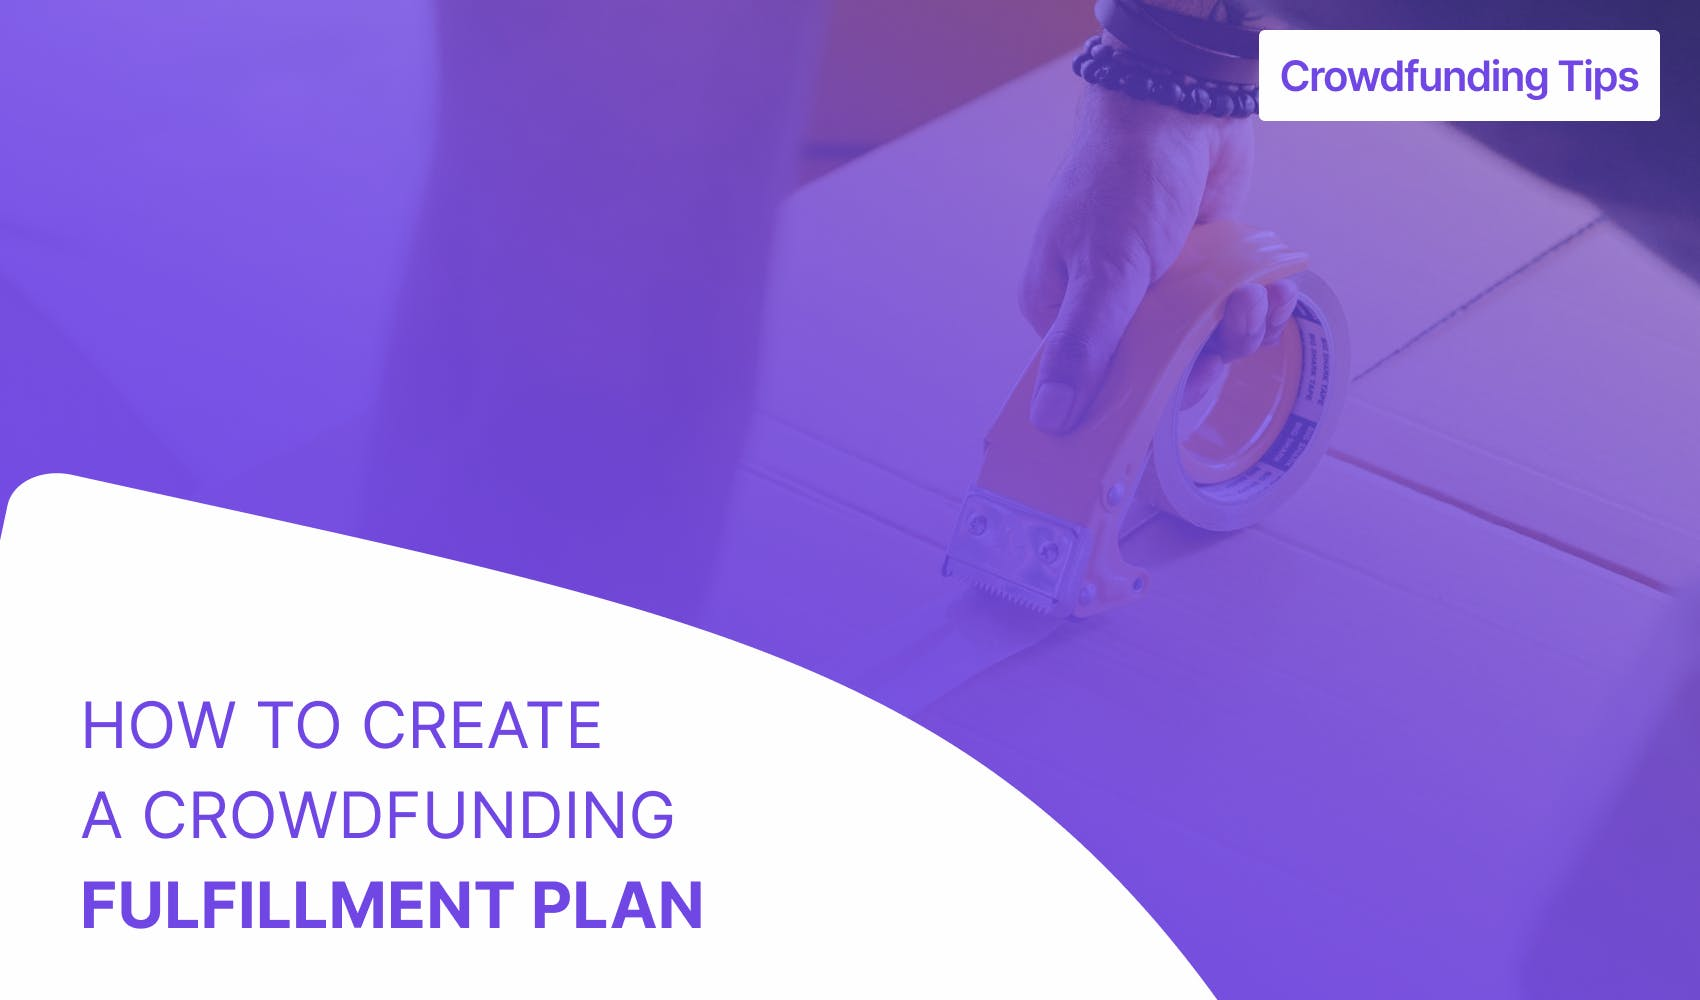 crowdfunding fulfillment plan